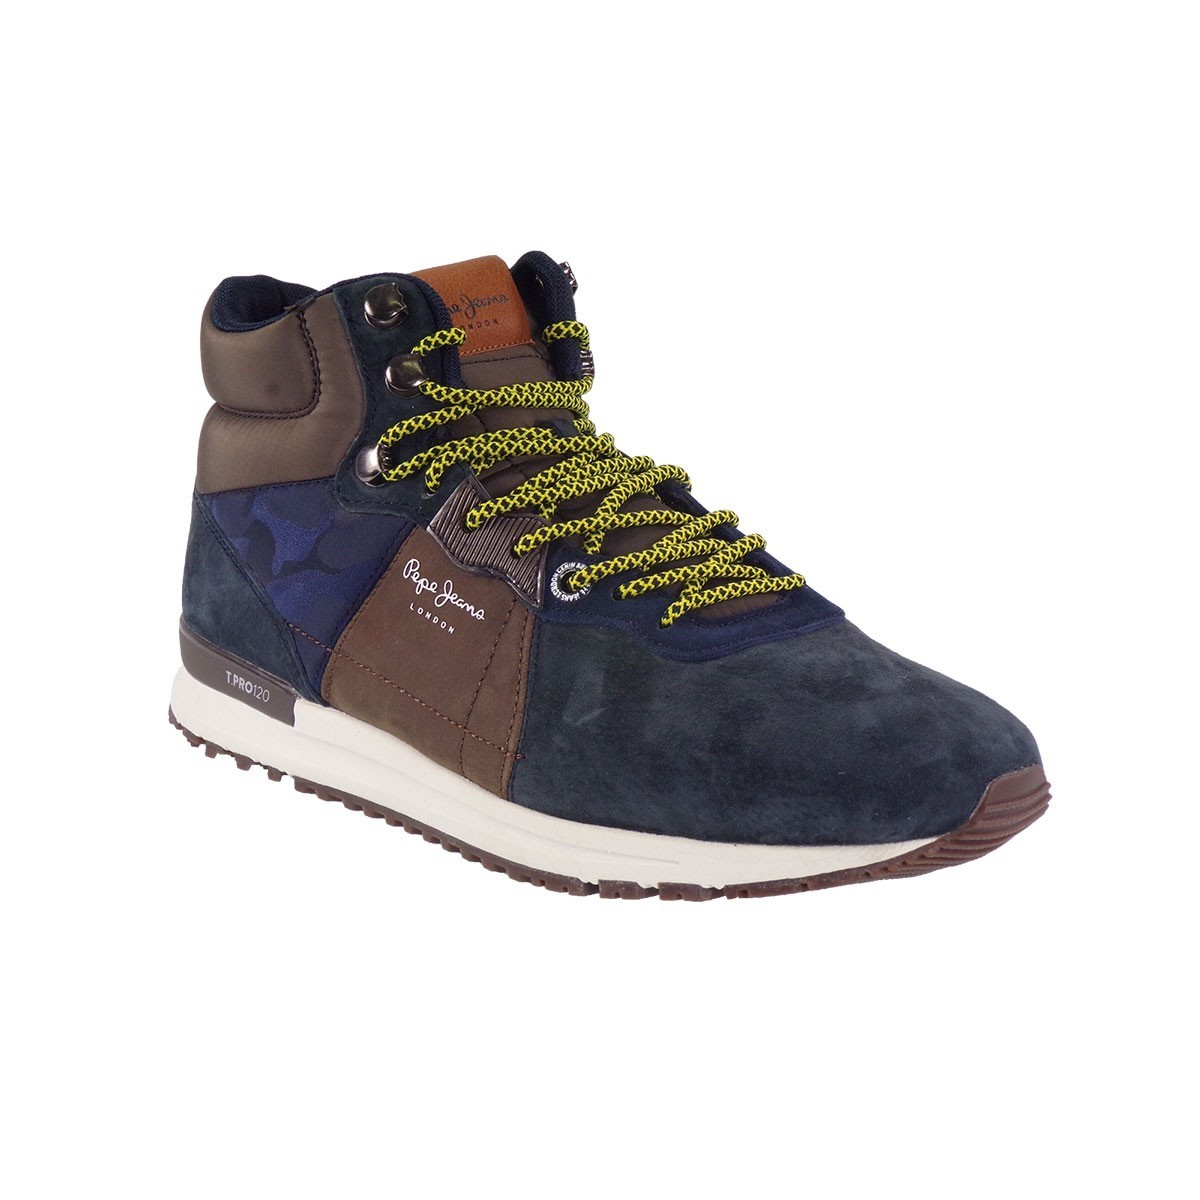 Pepe Jeans TINKER BOOT Sneakers Ανδρικά Παπούτσια Μποτάκια PMS30490 ... 4626435b1d1